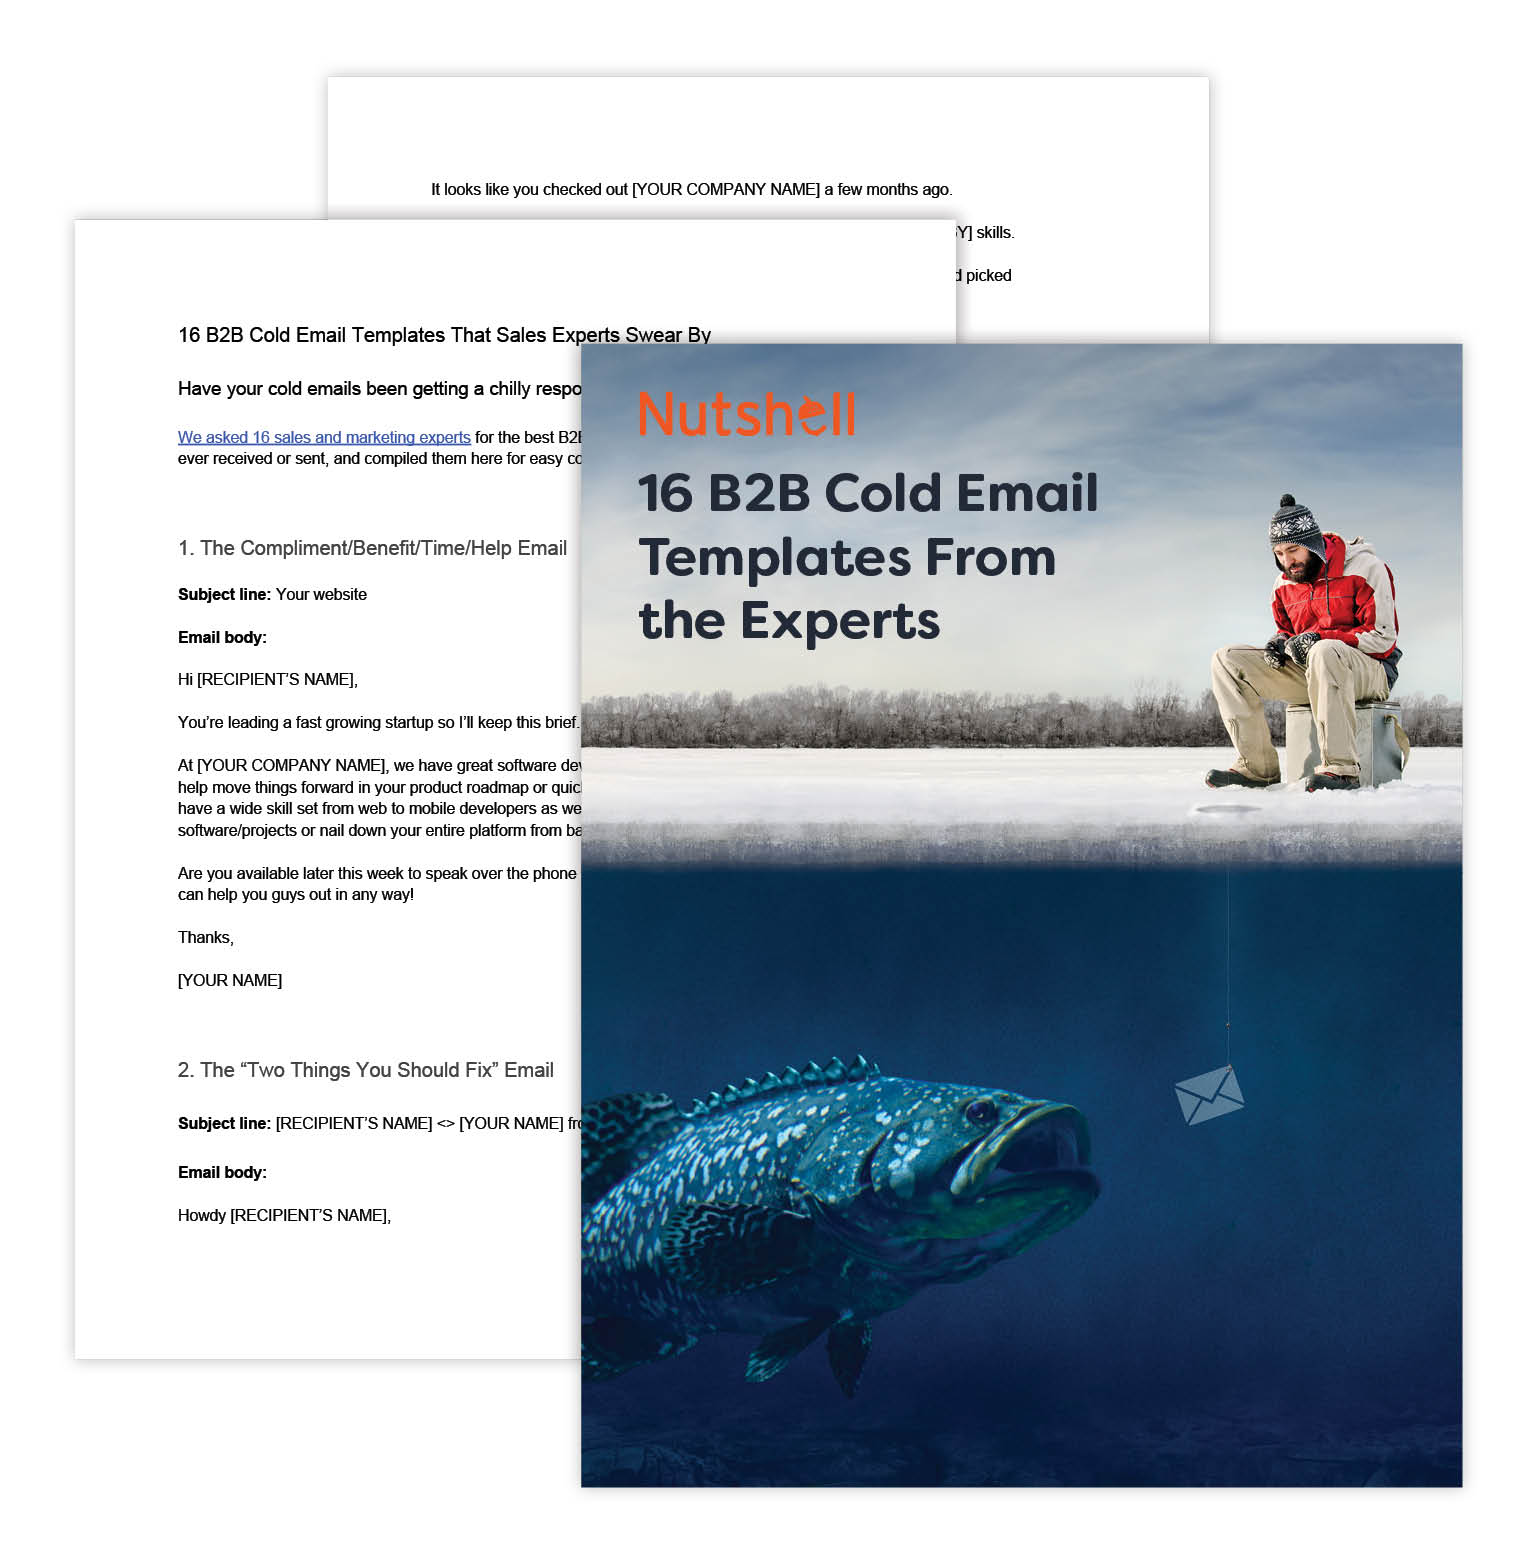 b2b cold email templates from sales experts